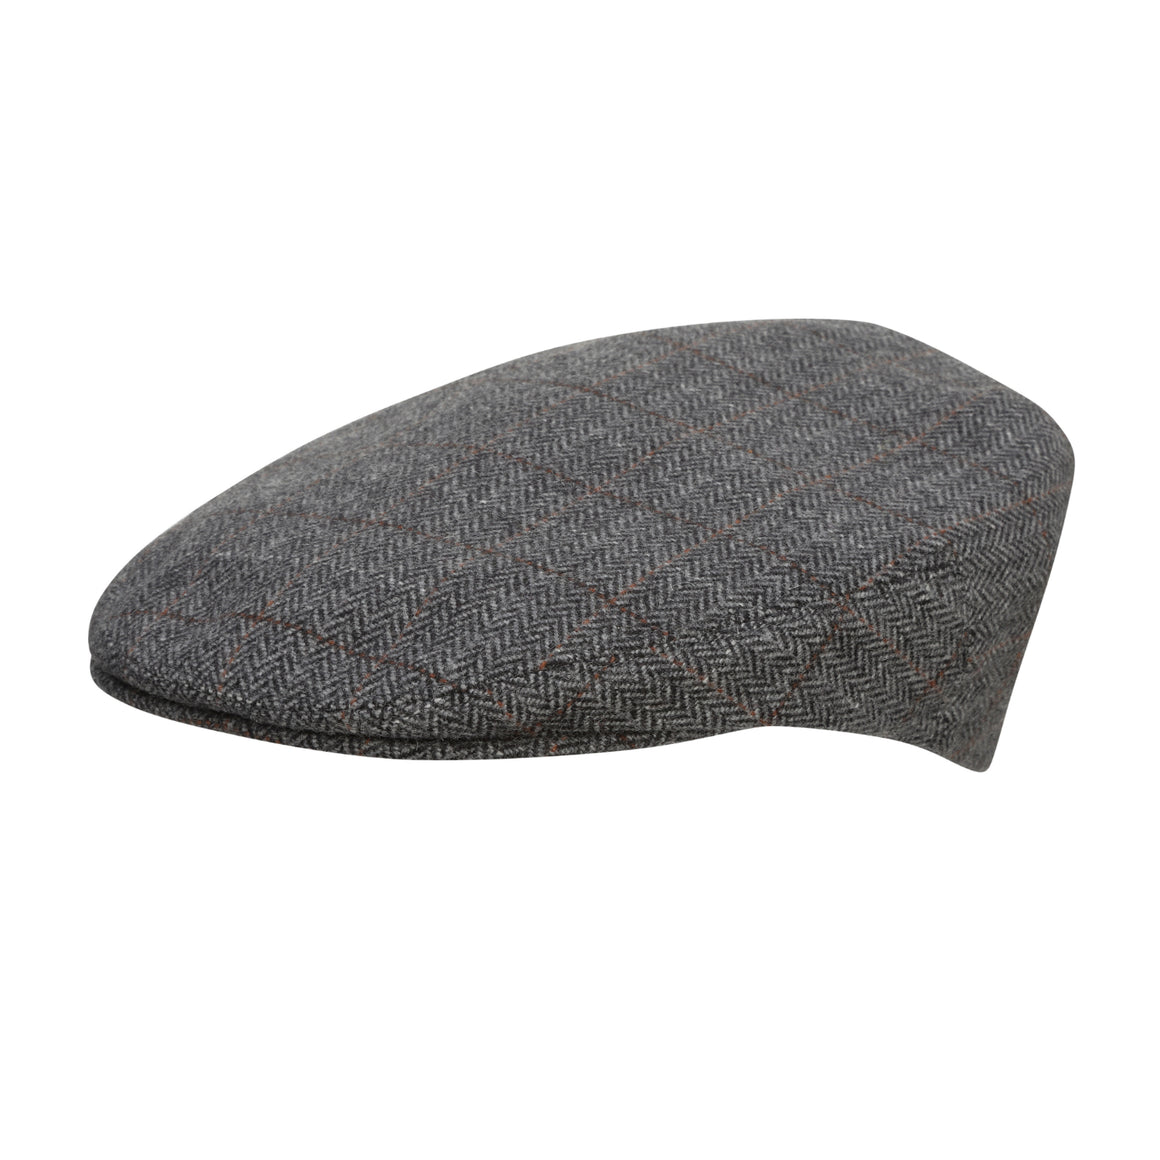 468ea4c4a67 City Sport - Cool Comfort - Wool Flat Cap - Grey Herringbone 3140